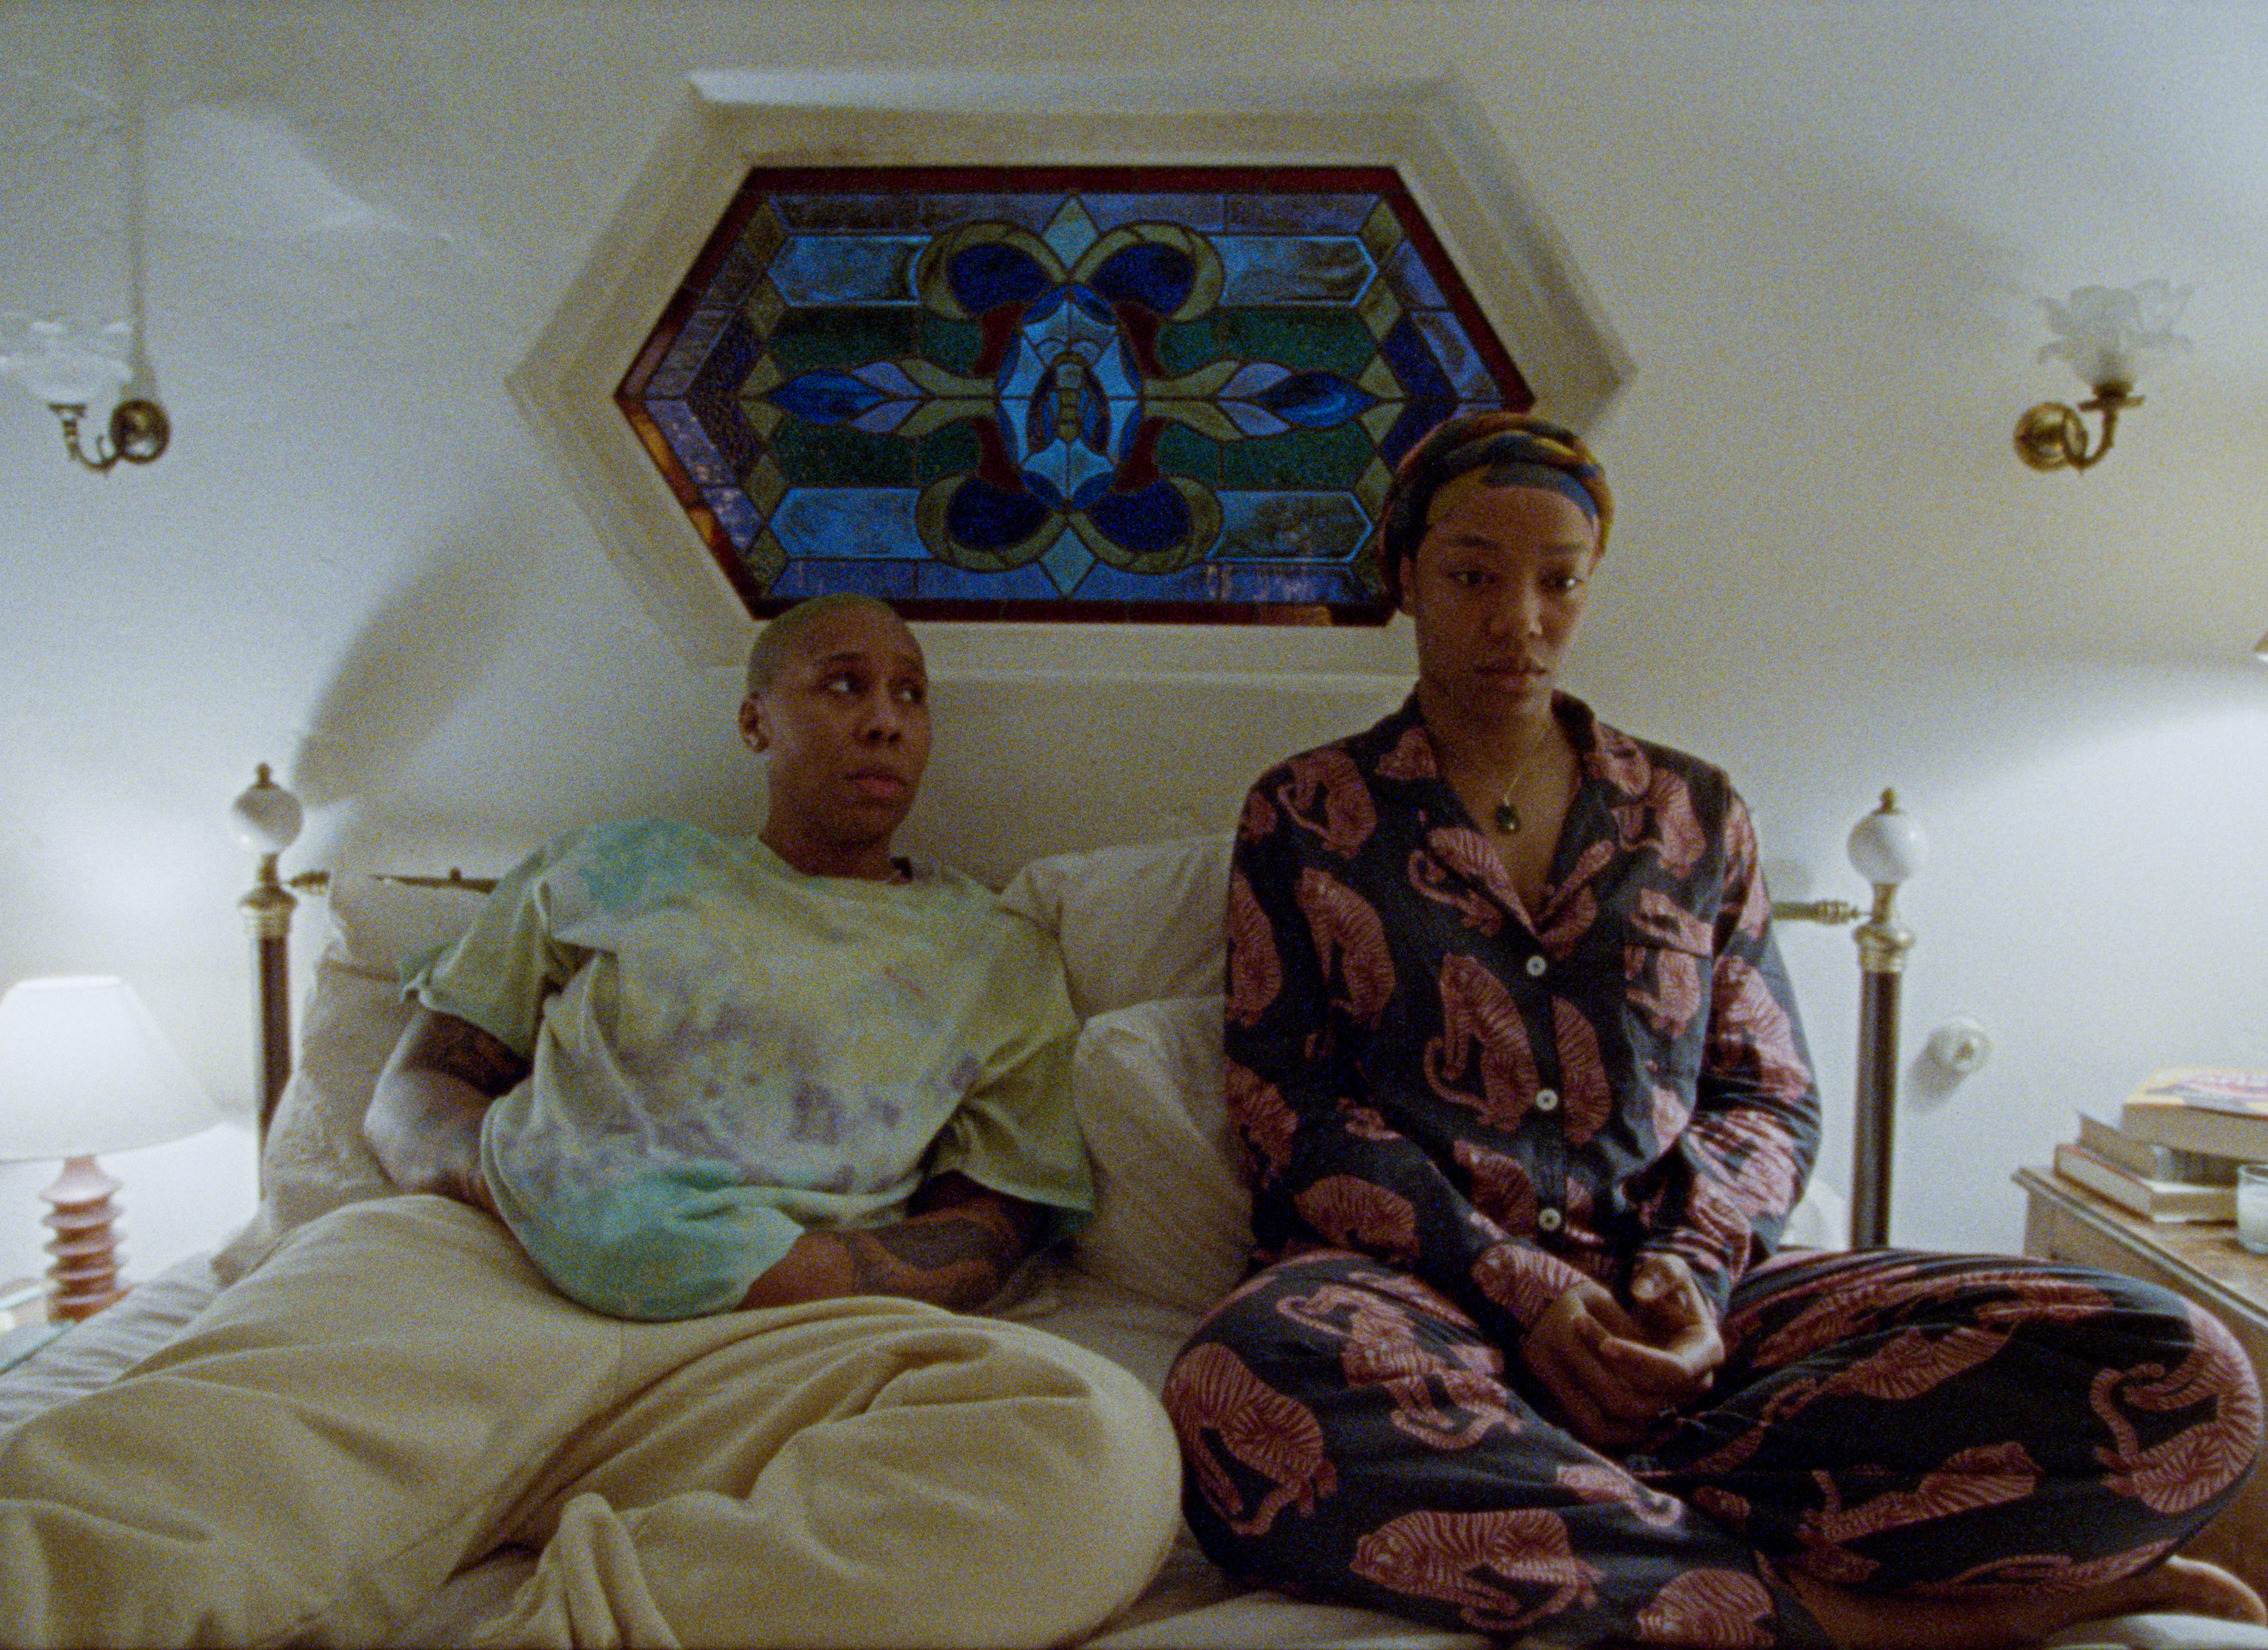 Lena Waithe and Naomi Ackie in Master of None (2015)